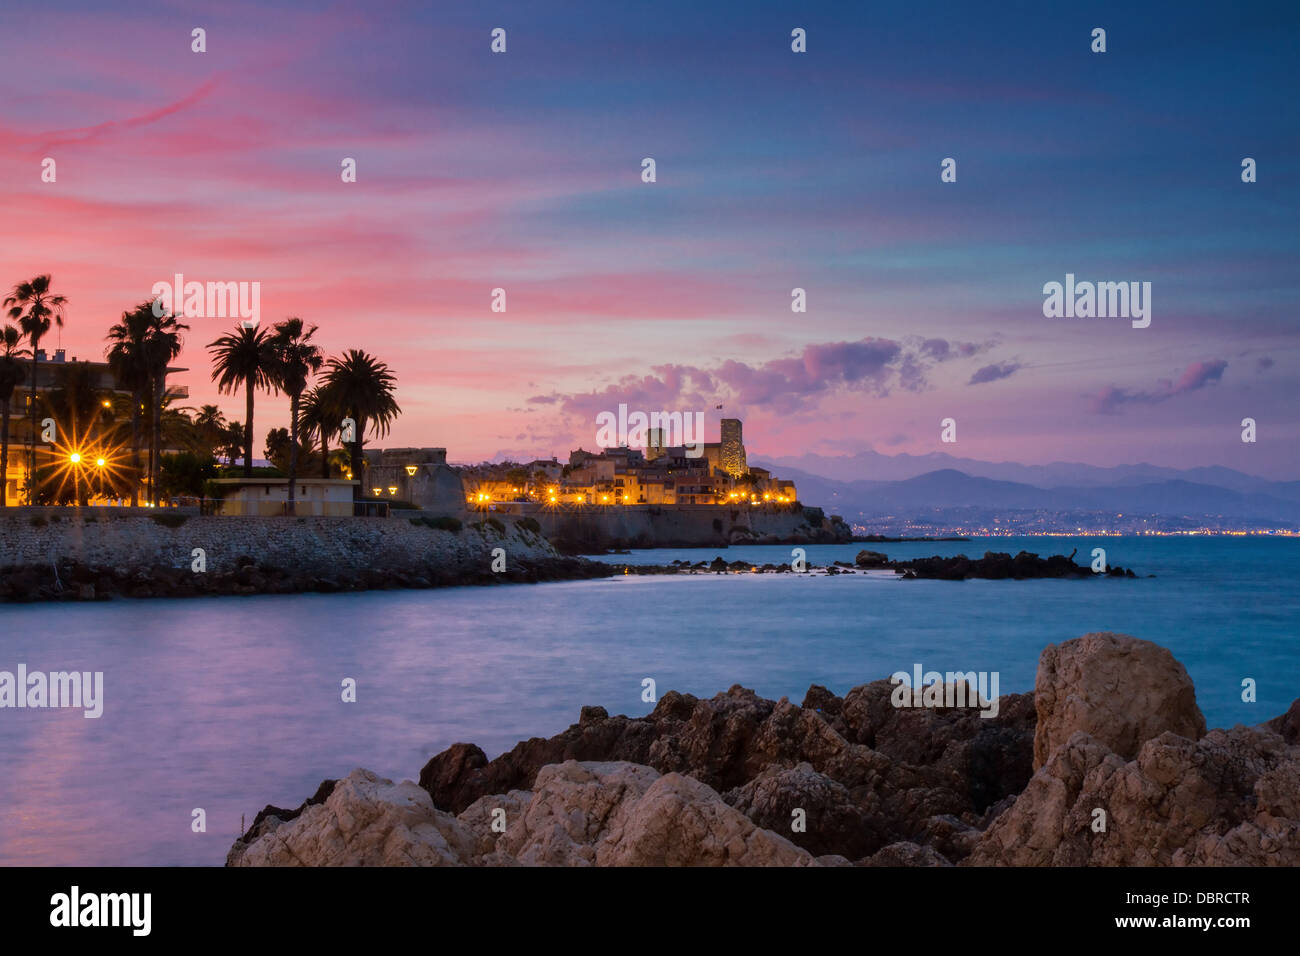 Seascape of Antibes at Sunset, Provence, France - Stock Image